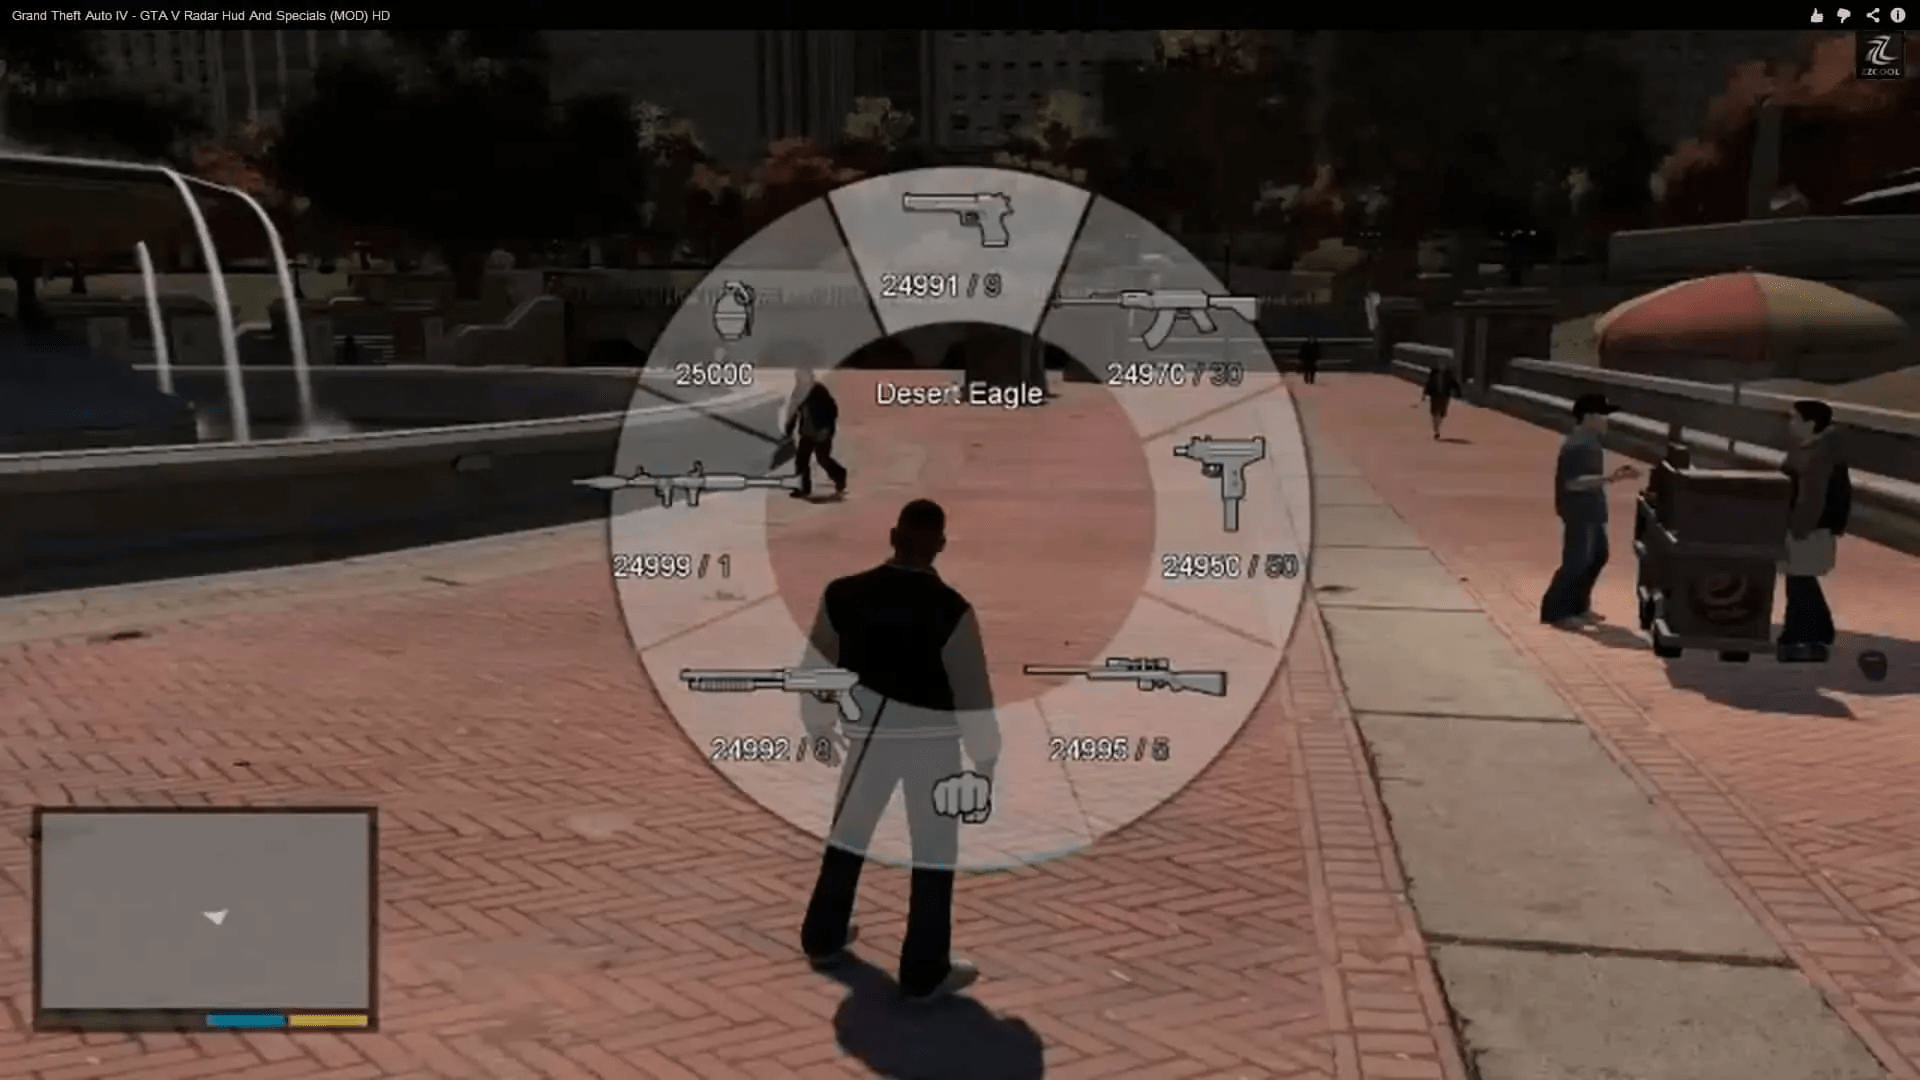 Mod Brings GTA V Radar And Specials To GTA IV GTA BOOM